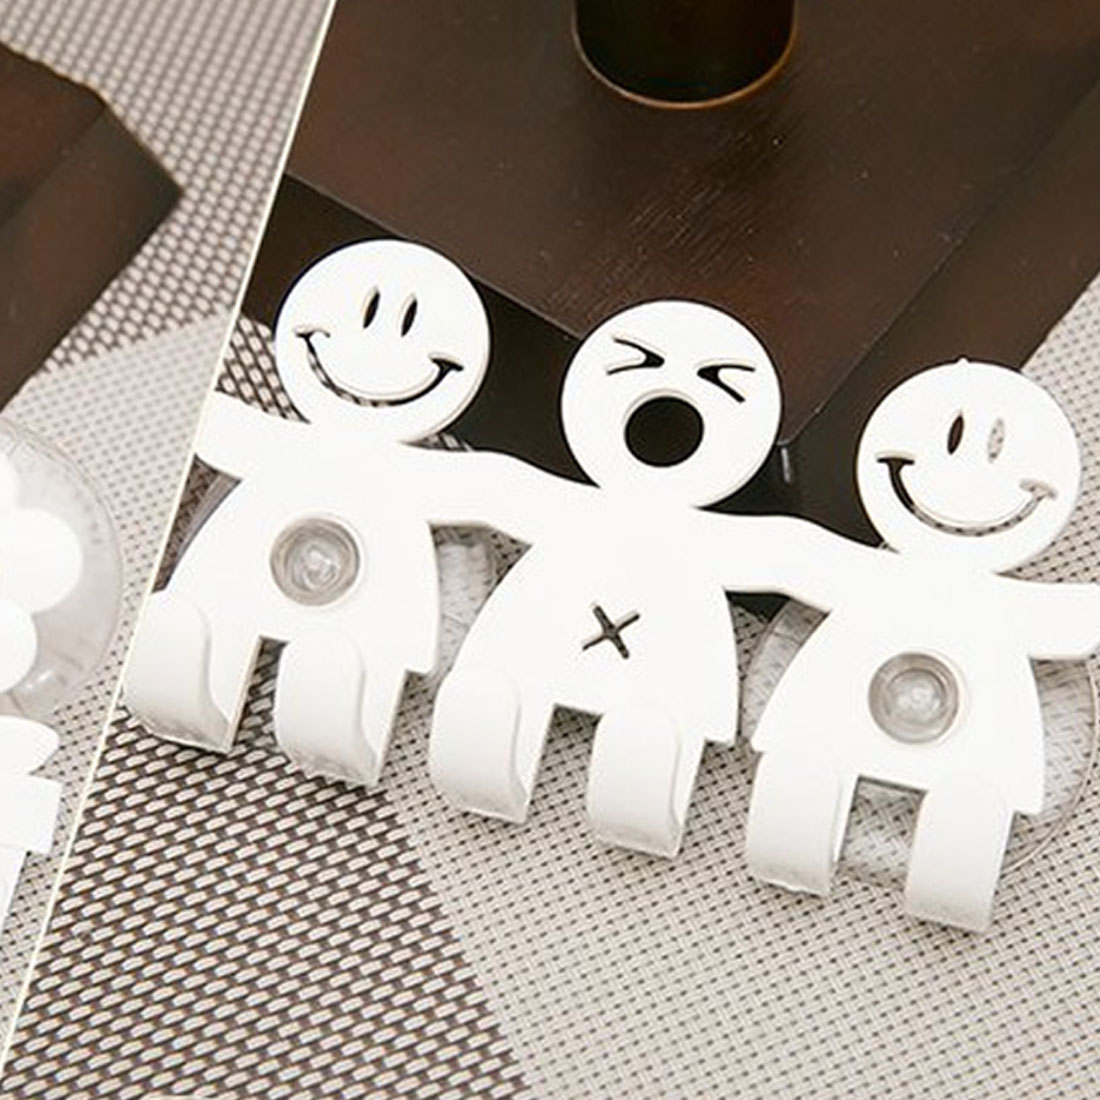 White Cute Cartoon Bathroom Sets Cartoon Sucker 5 Position Toothbrush Holder Suction Hooks